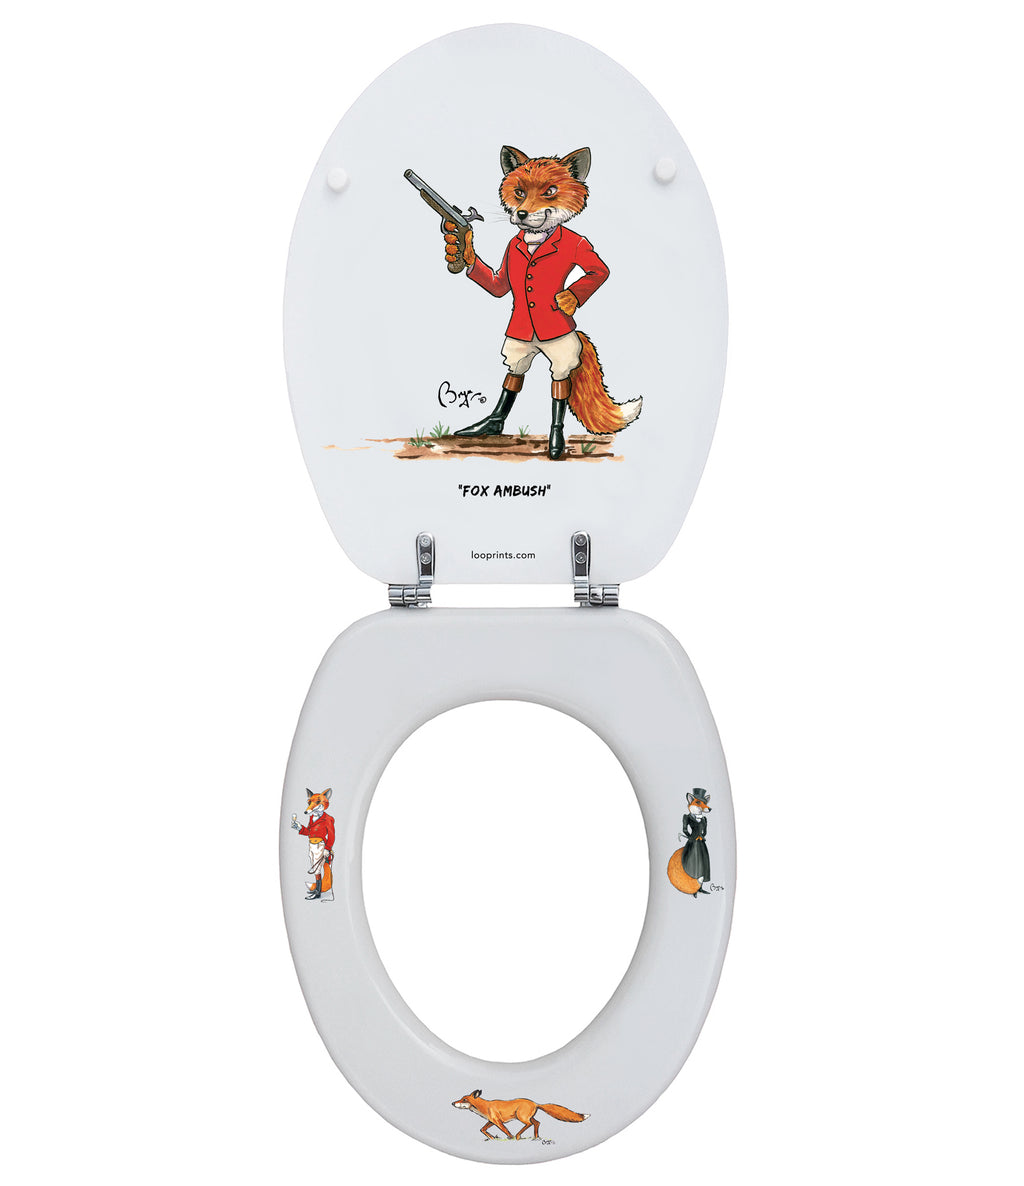 Mr & Mrs Fox - Bryn Parry - Toilet Seat.